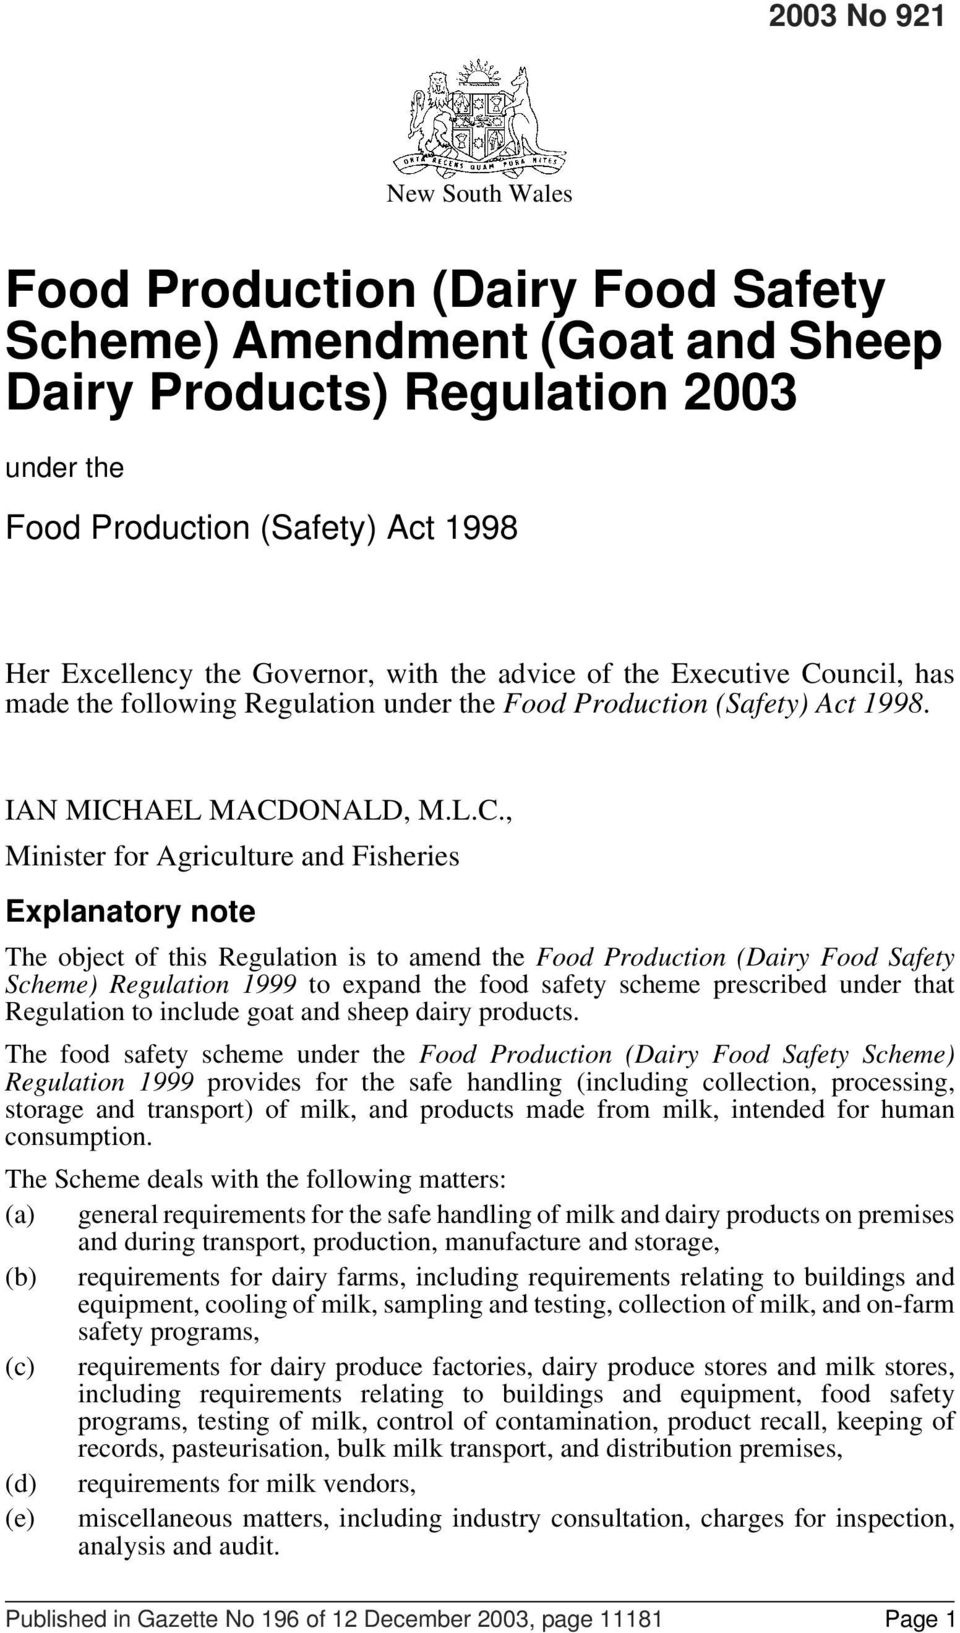 uncil, has made the following Regulation under the Food Production (Safety) Act 1998. IAN MICH